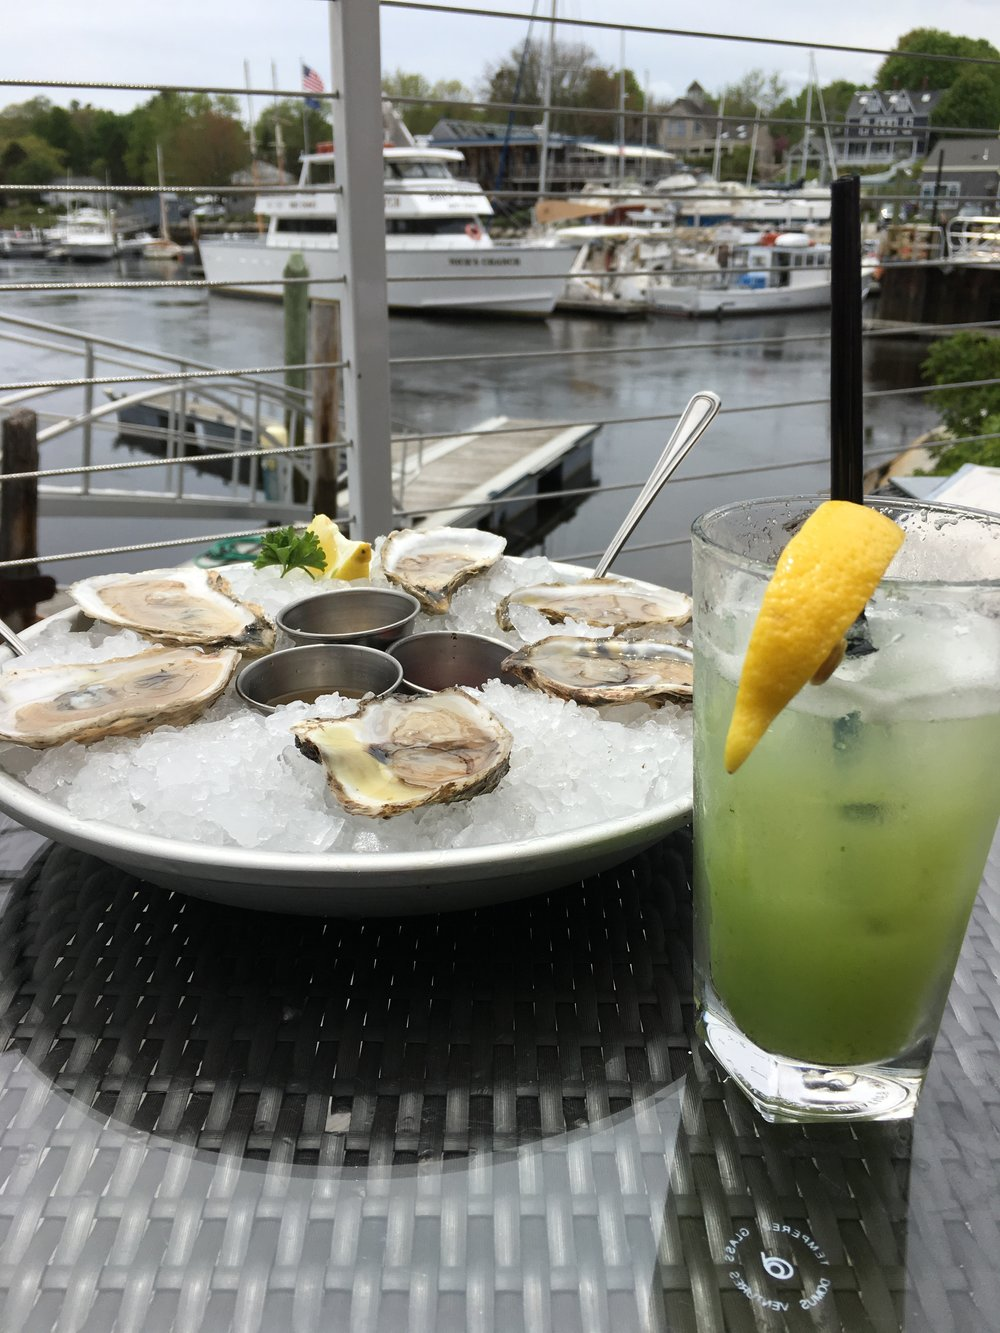 4.David's KPT (Rehearsal Dinner + Lodging) - David's KPT is acclaimed Portland Chef David Turin's restaurant located in the Boat House hotel. The restaurant is right on the water in downtown Kennebunkport and is incredibly convenient. Private events with guests of 80 or more require a buy out of the entire restaurant, but you can host a cocktail party for up to 28 people, or a seated dinner for 20 in the oyster bar. In addition, the outdoor patio lounge is a terrific place to meet your wedding guests for drinks the night before. The restaurant does have a chartered boat dock that you can use, should you chose to arrive in style on a sea vessel!p.s. The oysters are on point.